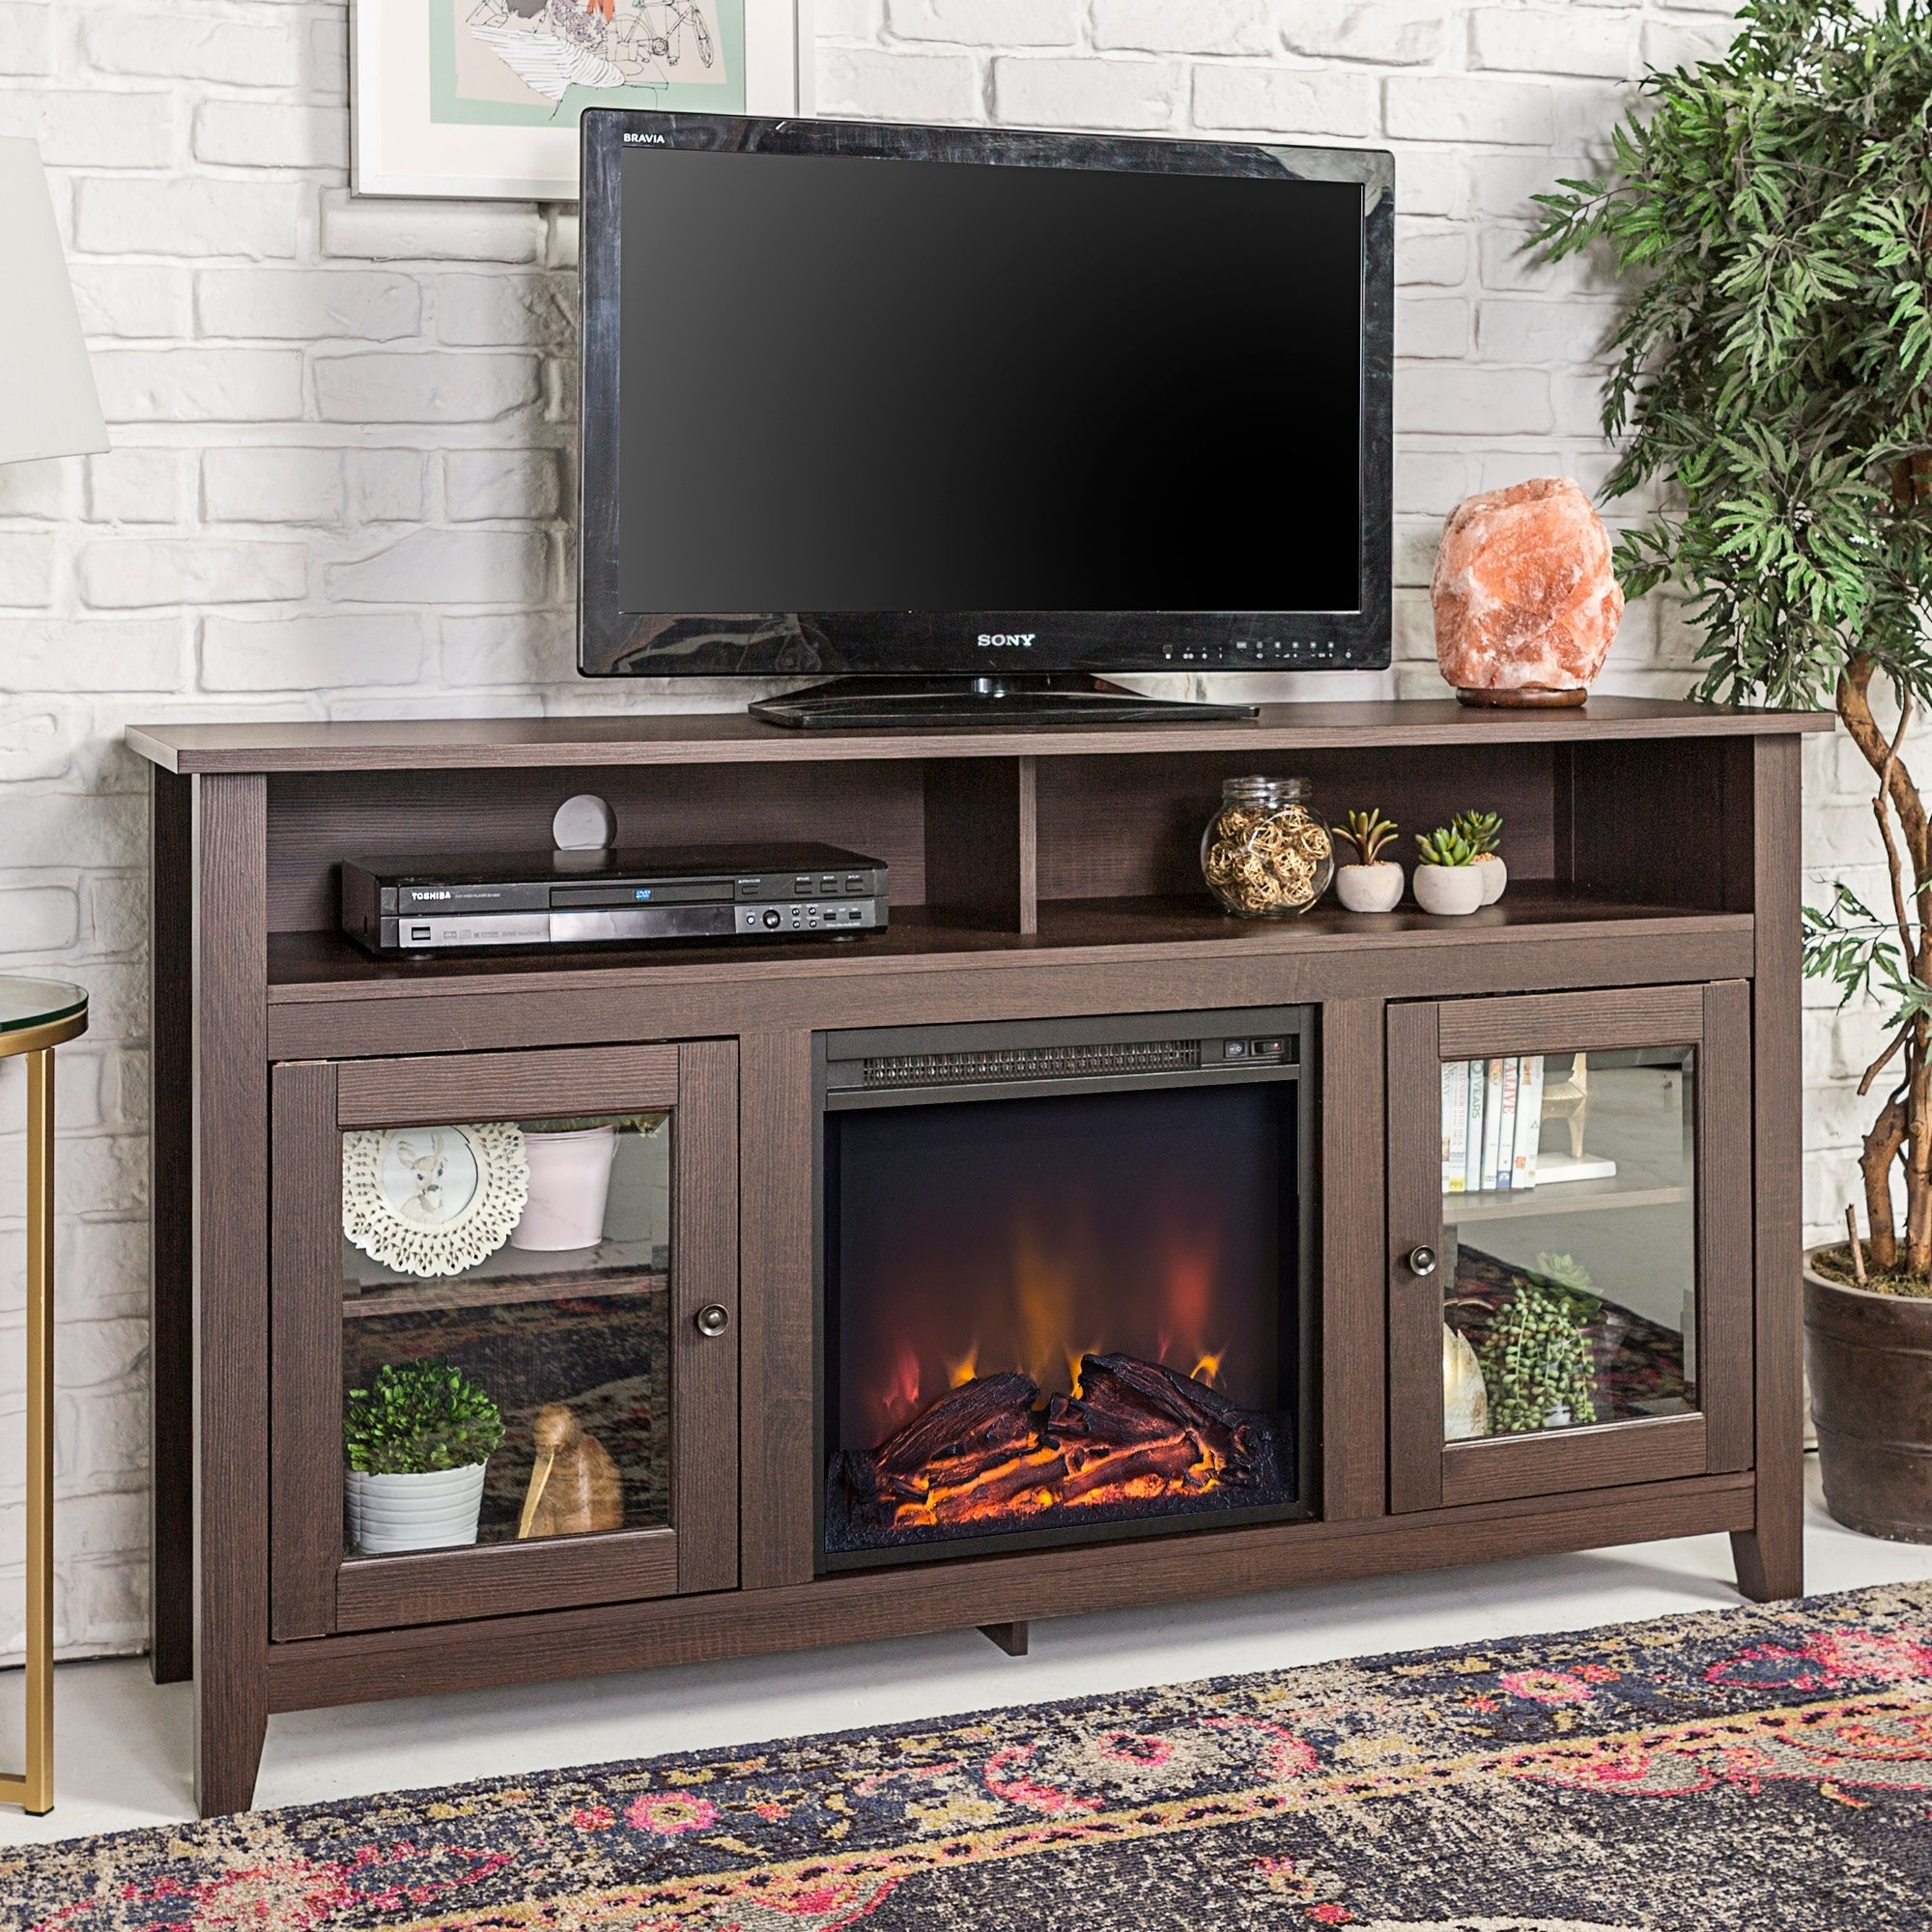 Shop 58 Highboy Fireplace Tv Stand Console Espresso 58 X 16 X